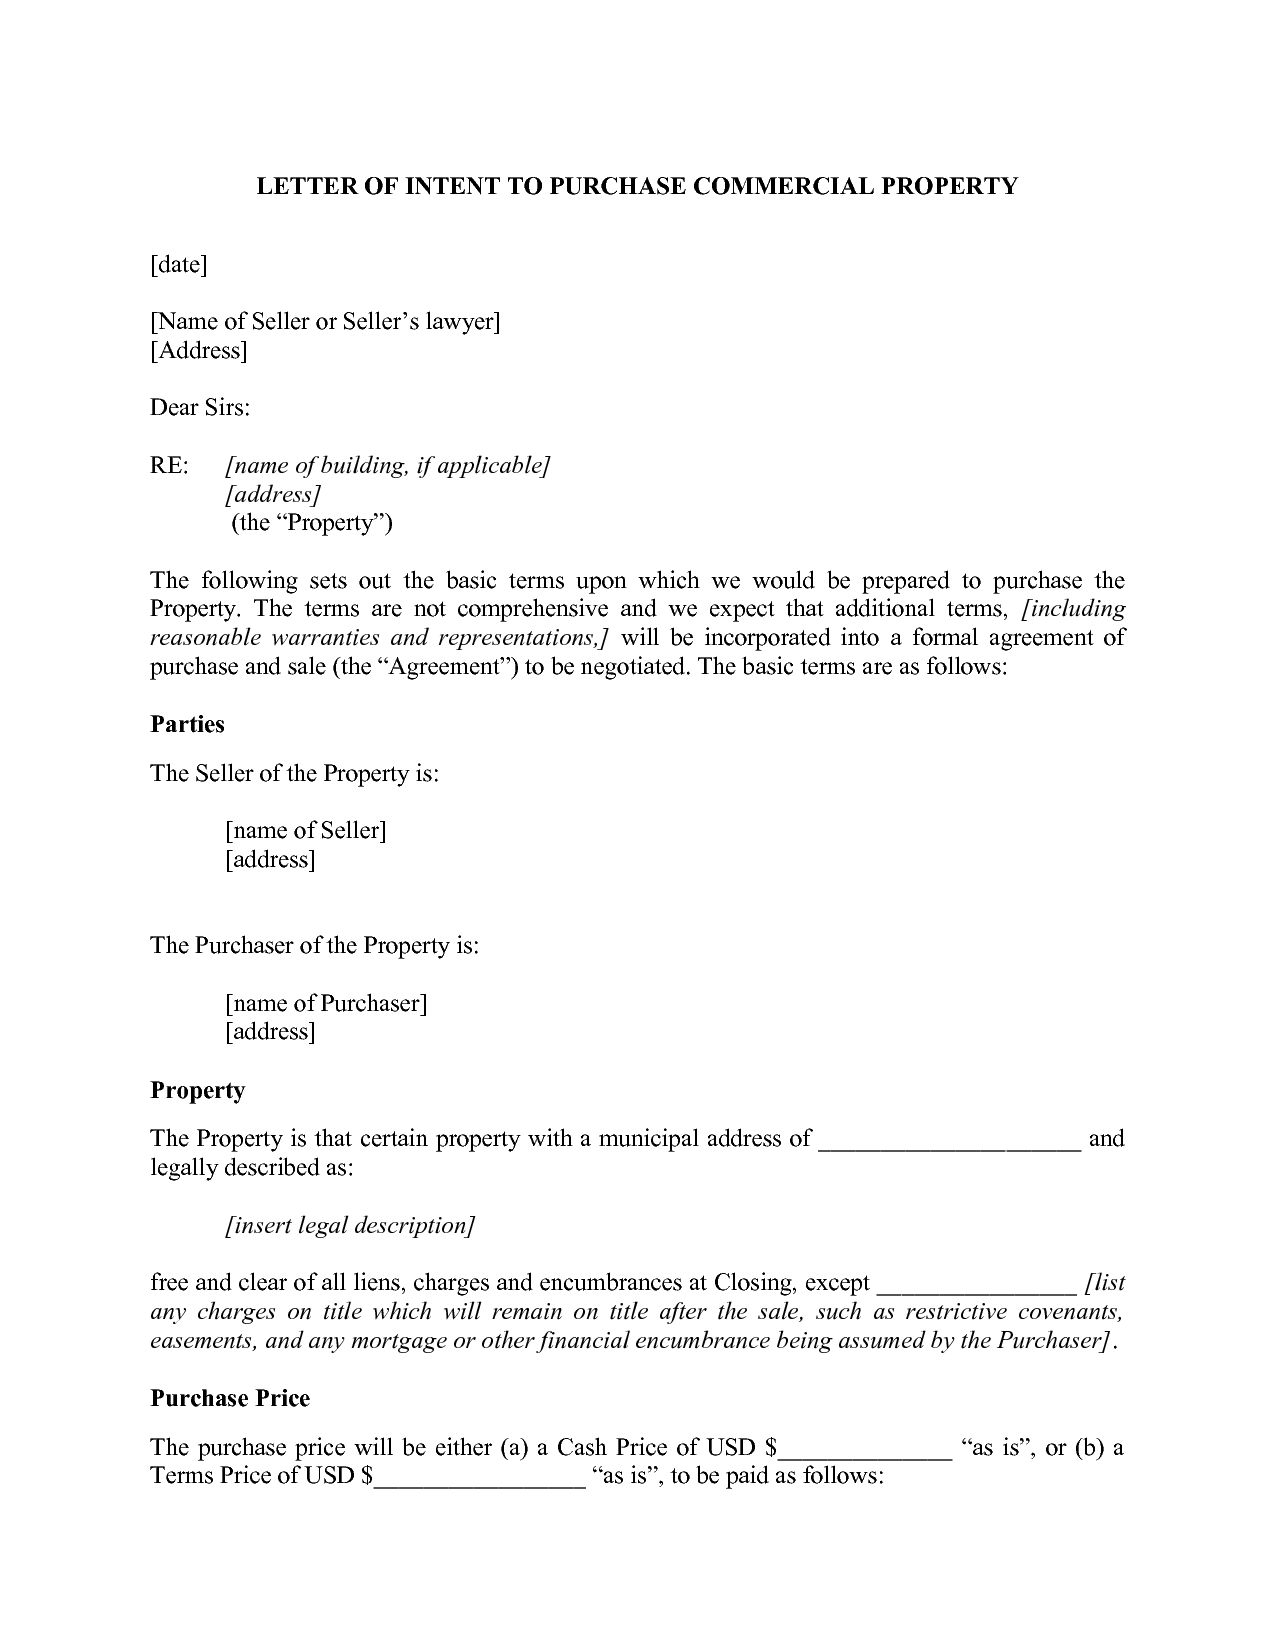 commercial real estate letter of intent to purchase template letter intent to purchase real property